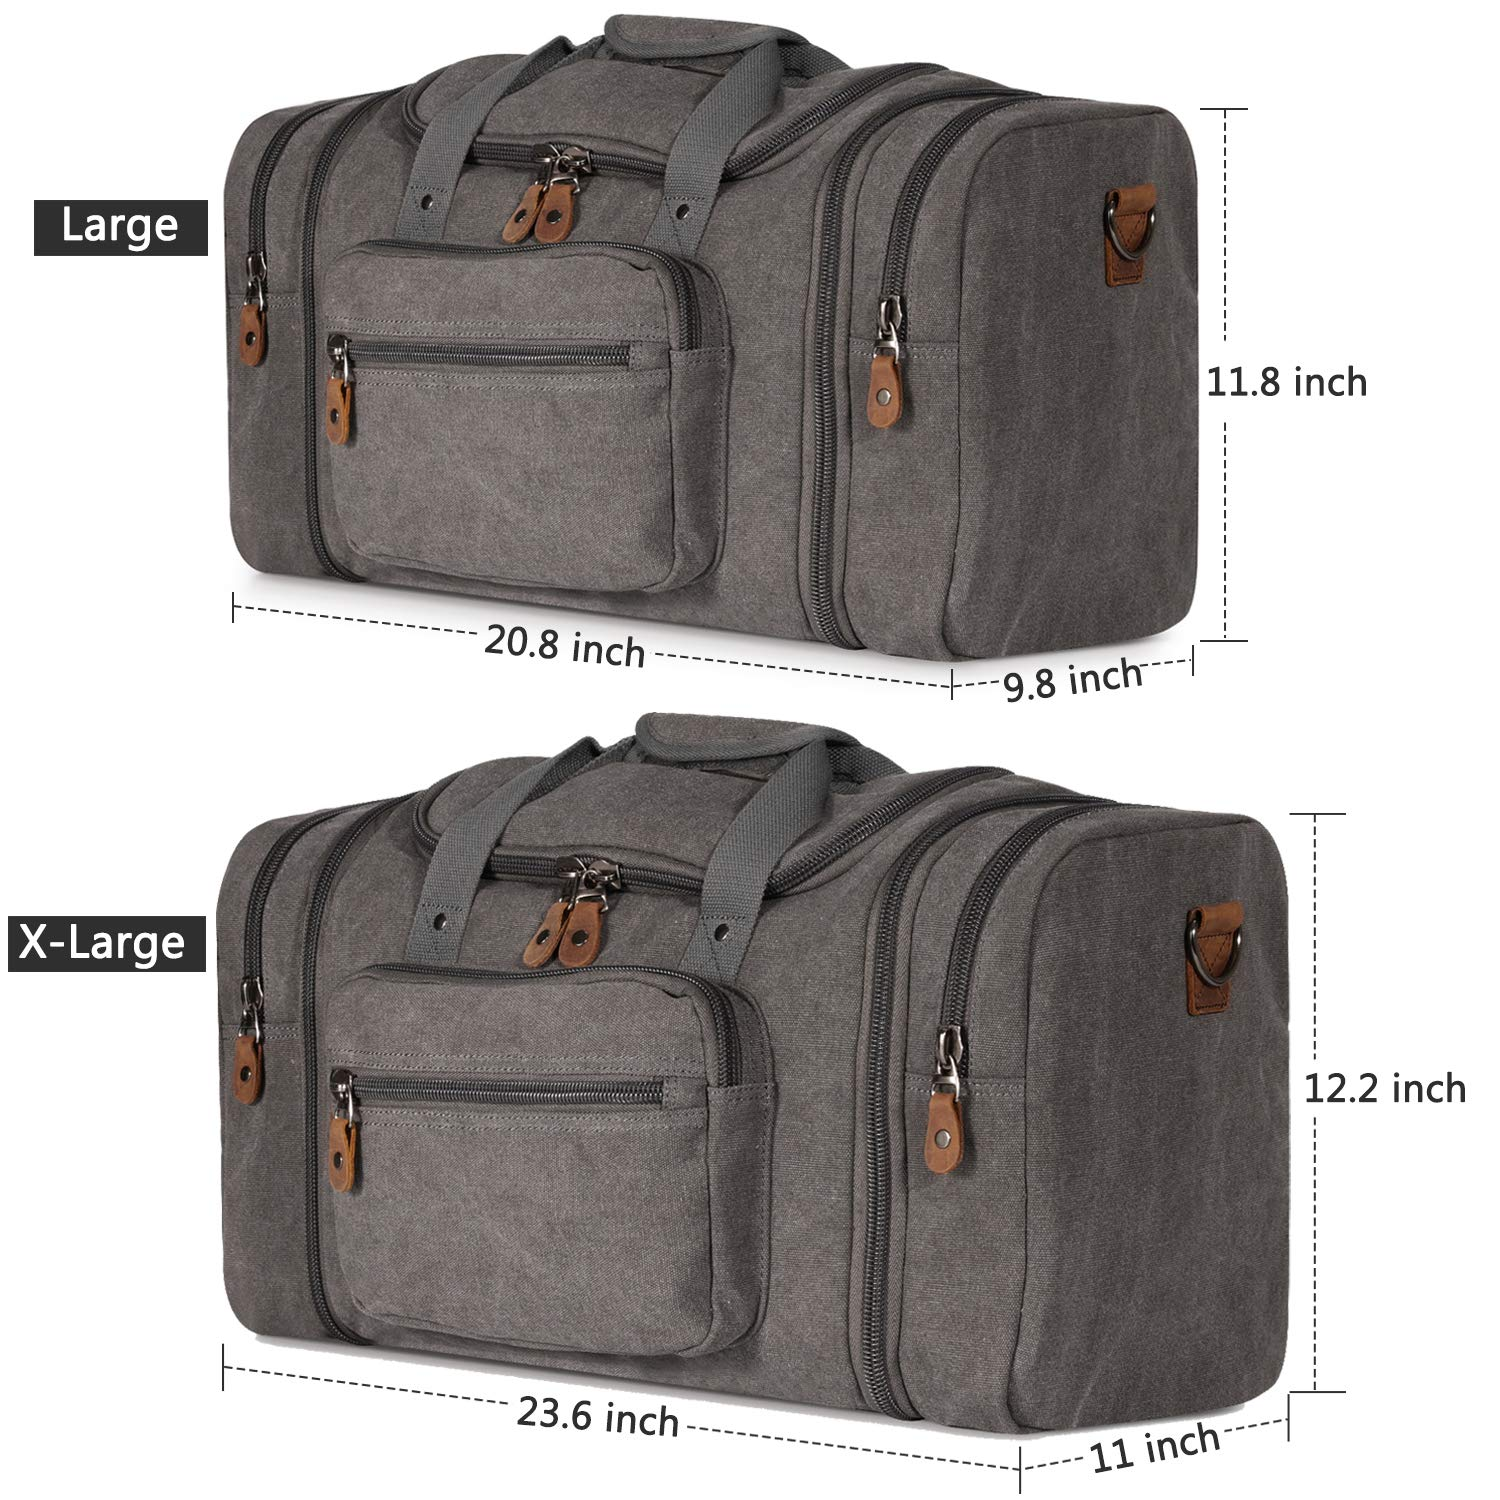 Plambag Canvas Duffle Bag for Travel Oversized Duffel Overnight Weekend Bag Dark Gray